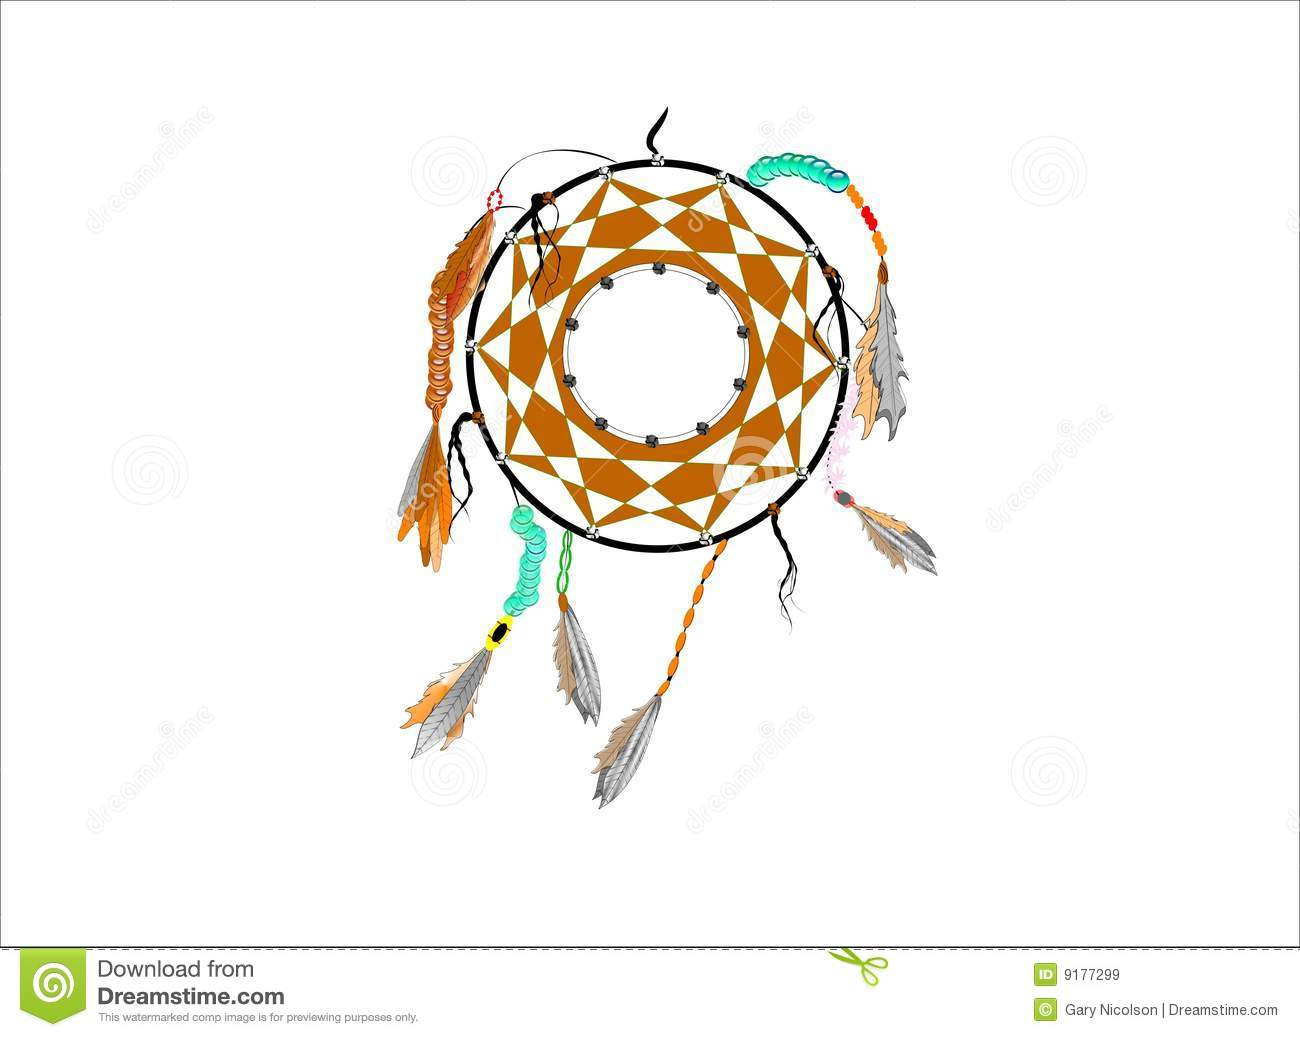 Dreamcatcher royalty free stock images image 9177299 for Dream catcher graphic